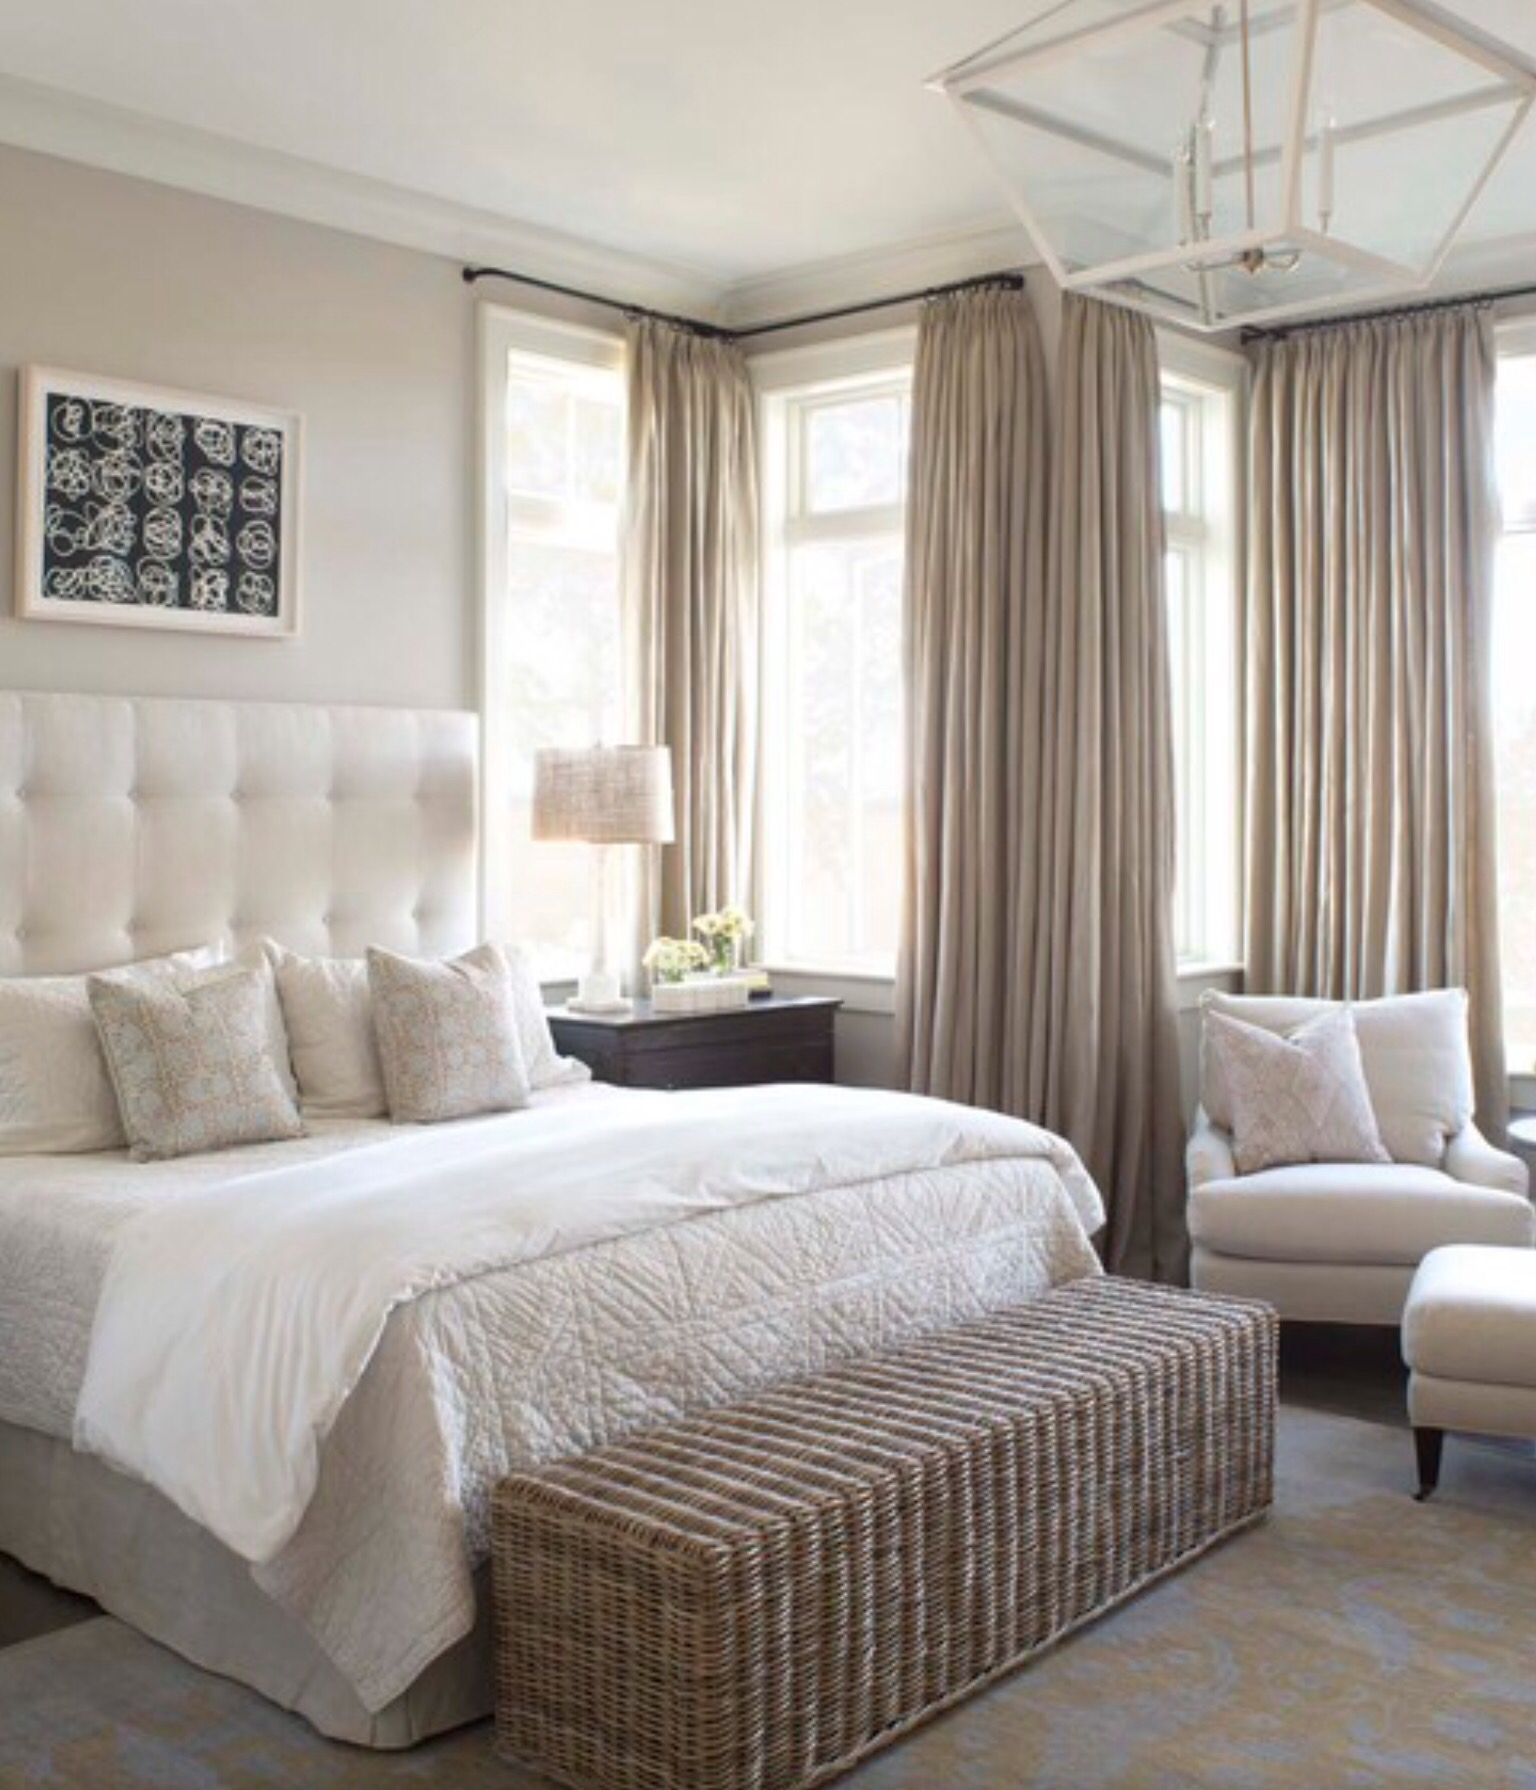 Pin On Master Bedroom Ideas: Cozy Master Bedroom, Master